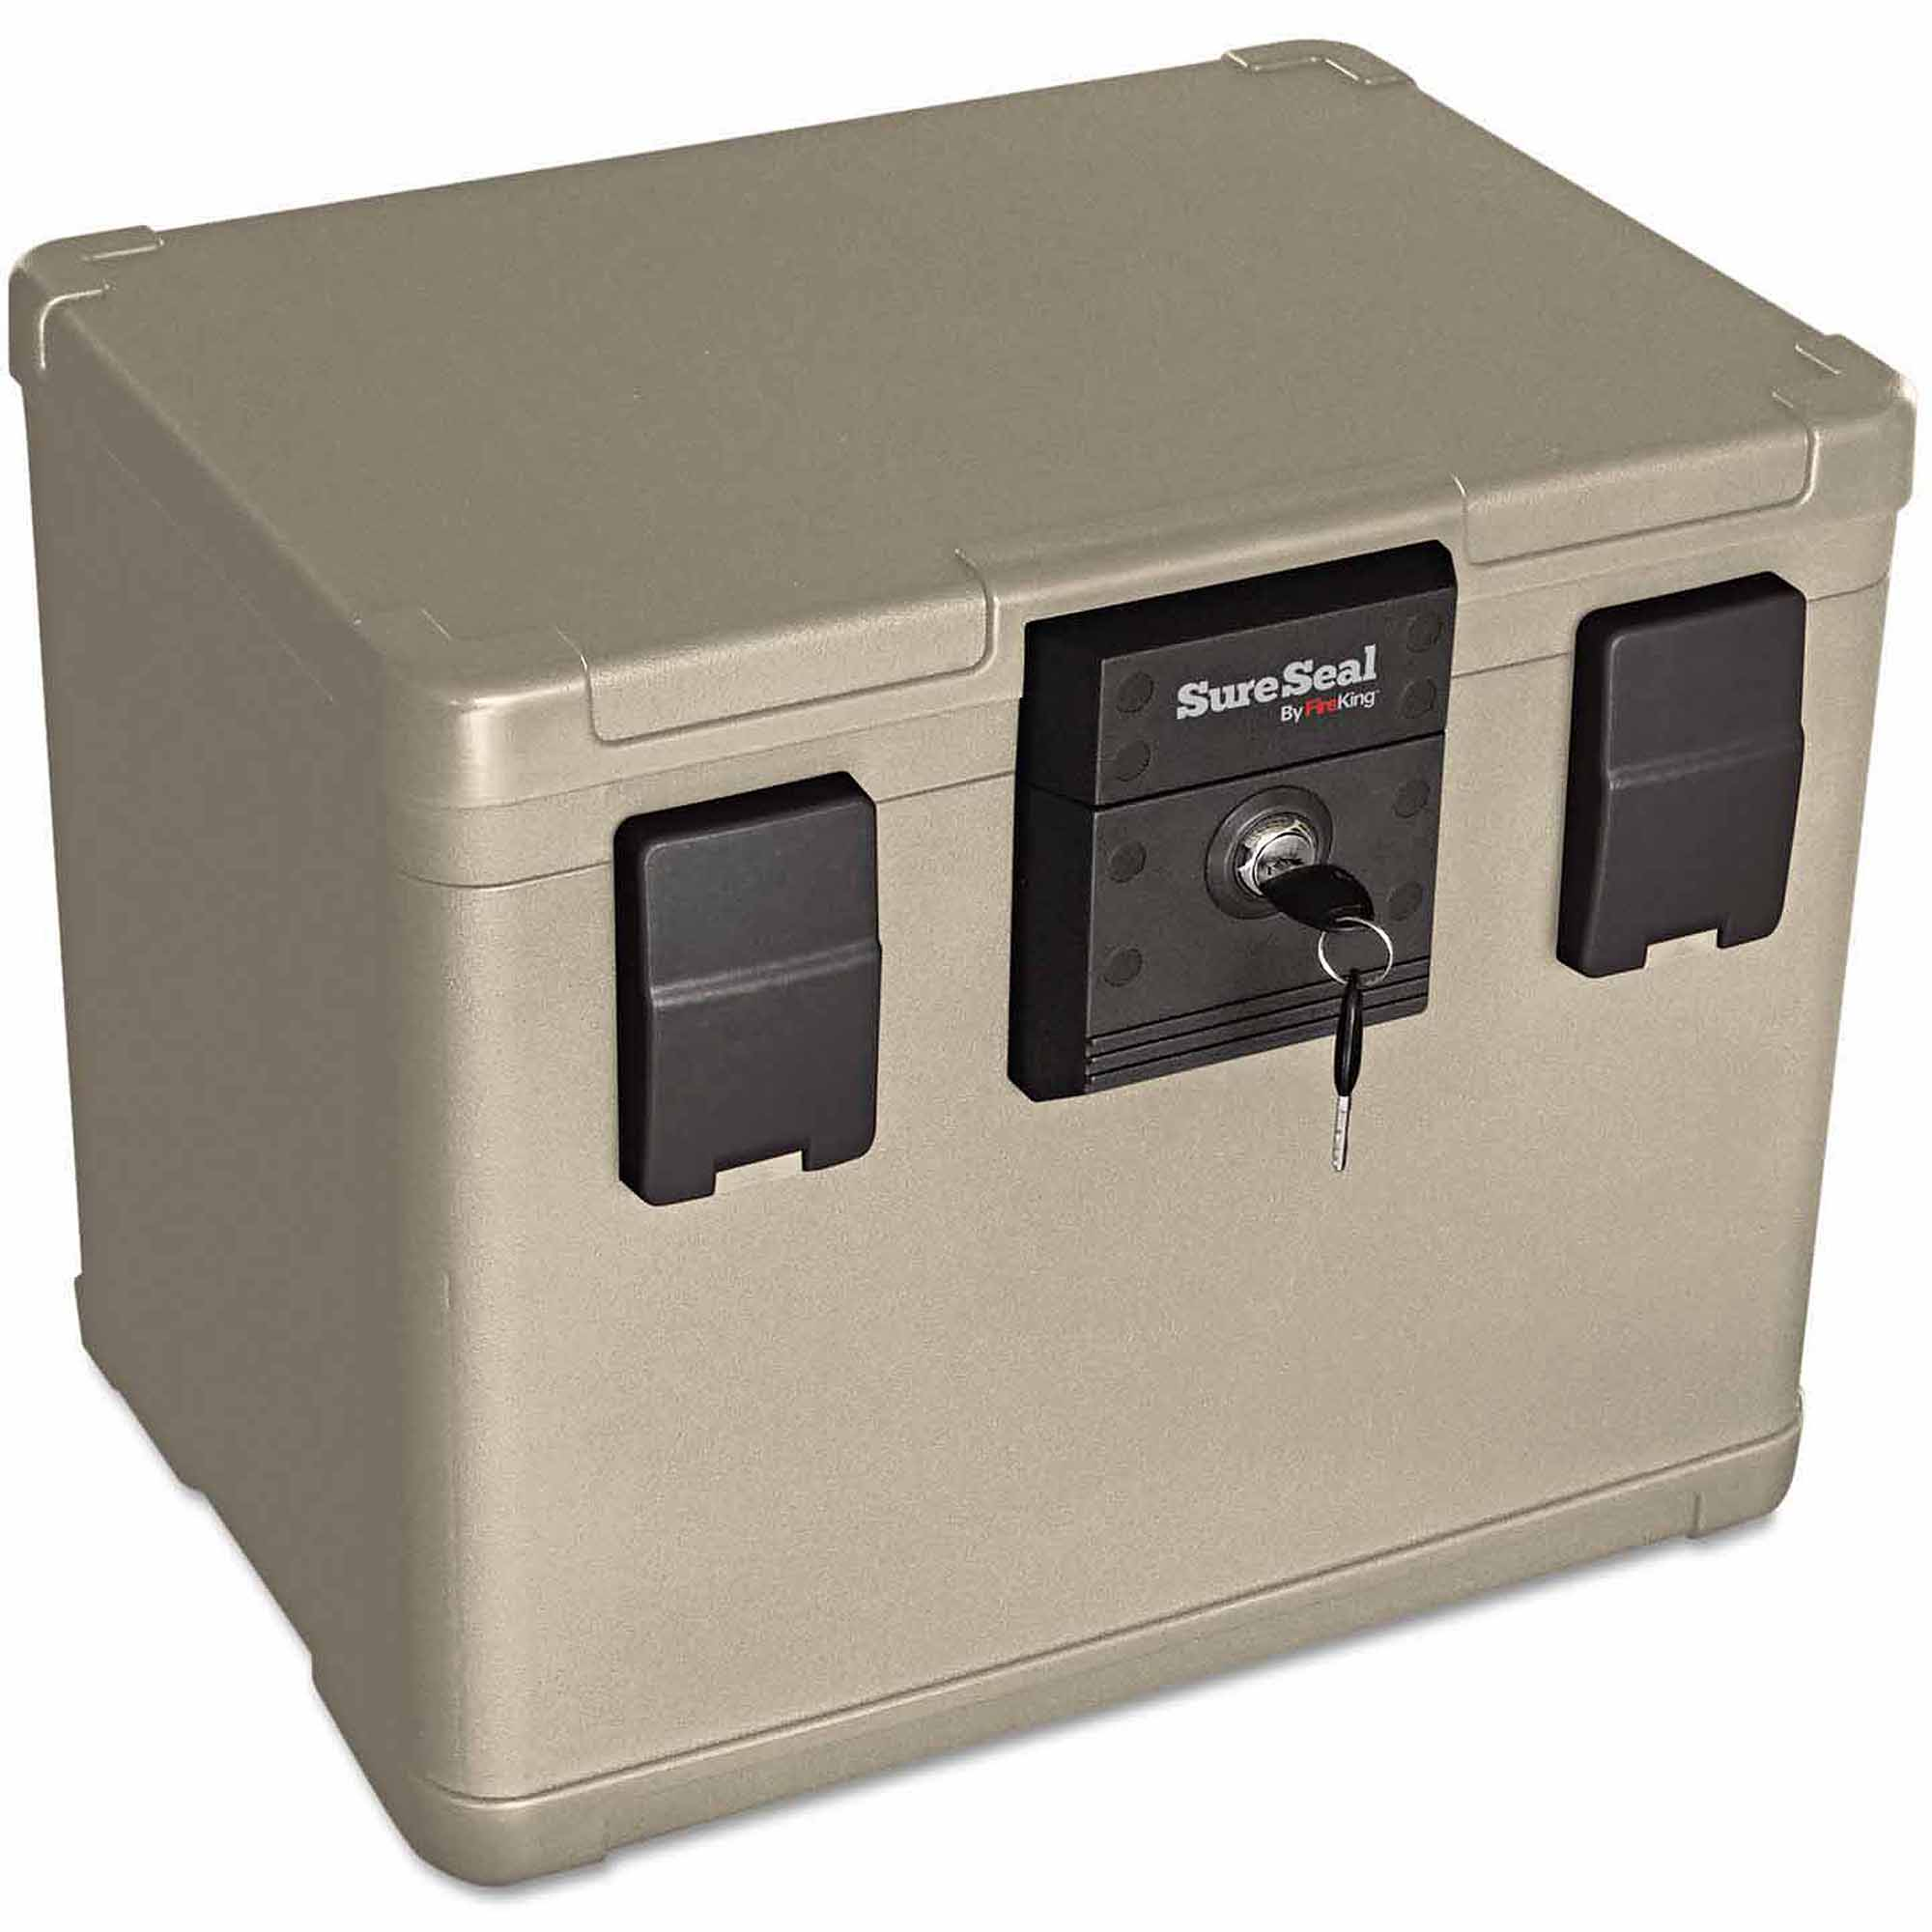 "SureSeal By FireKing Fire and Waterproof Chest, 16"" x 12.5"" x 13"", Taupe"